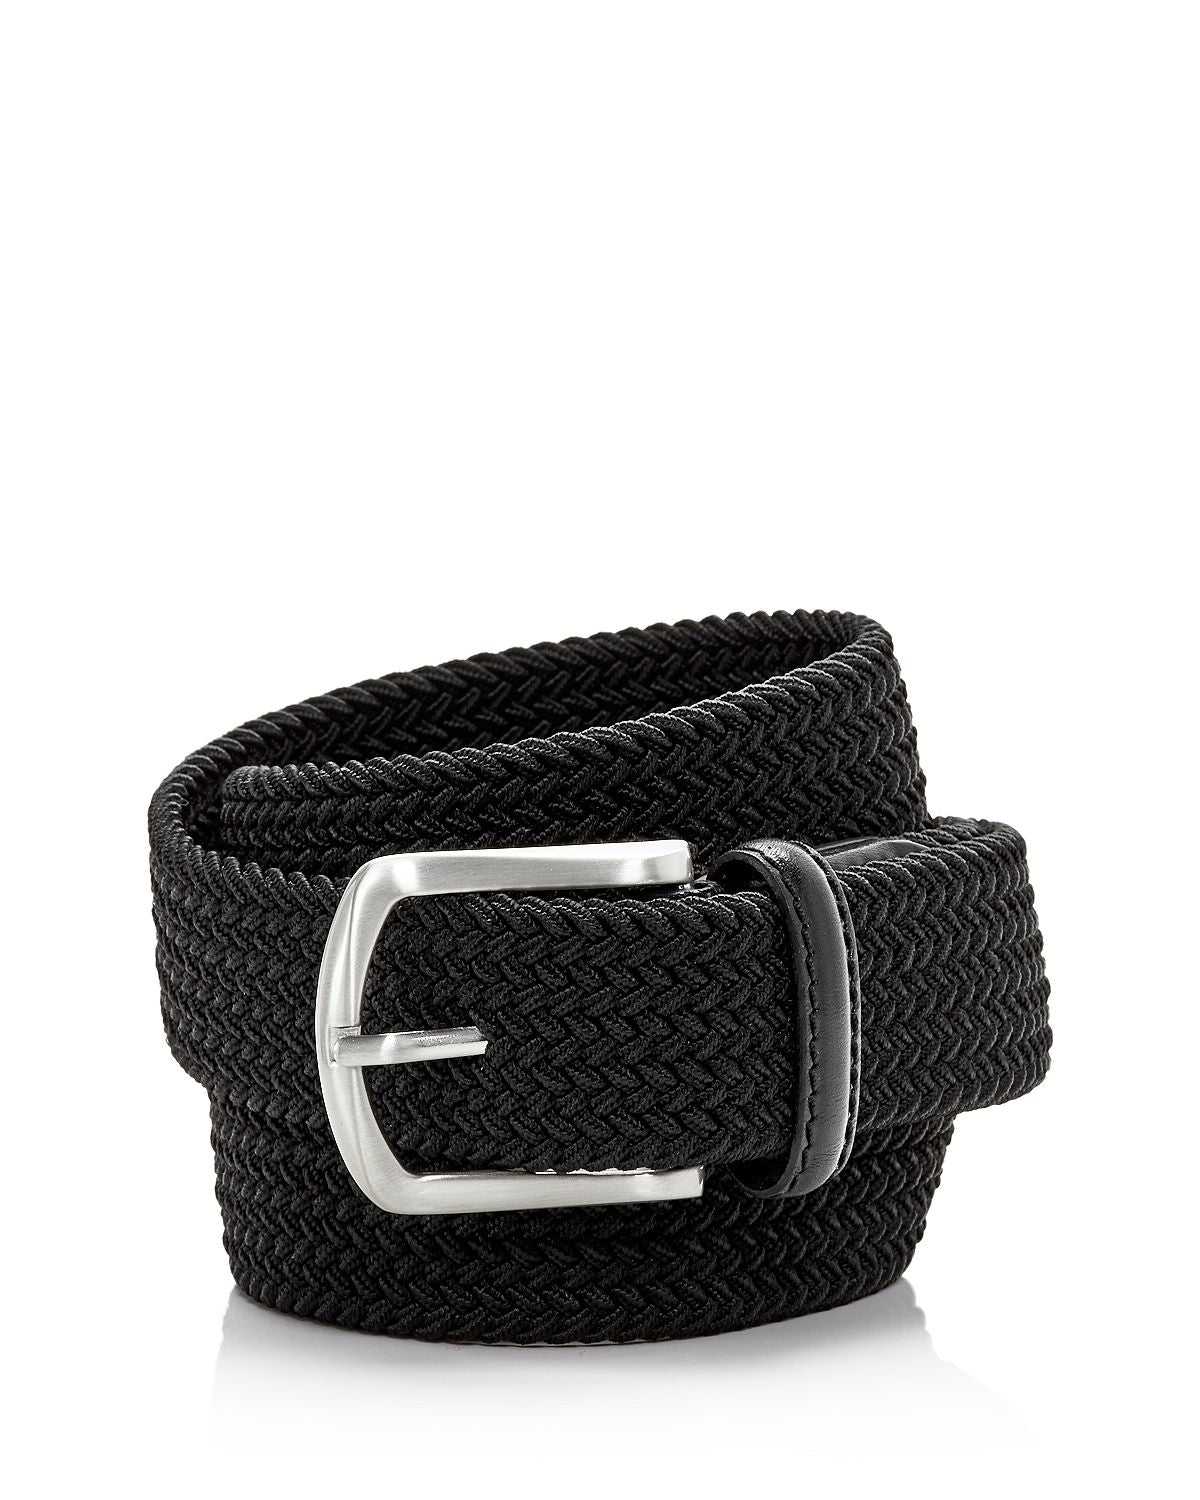 The Men's Store The Men's's Store At Woven Stretch Belt Black